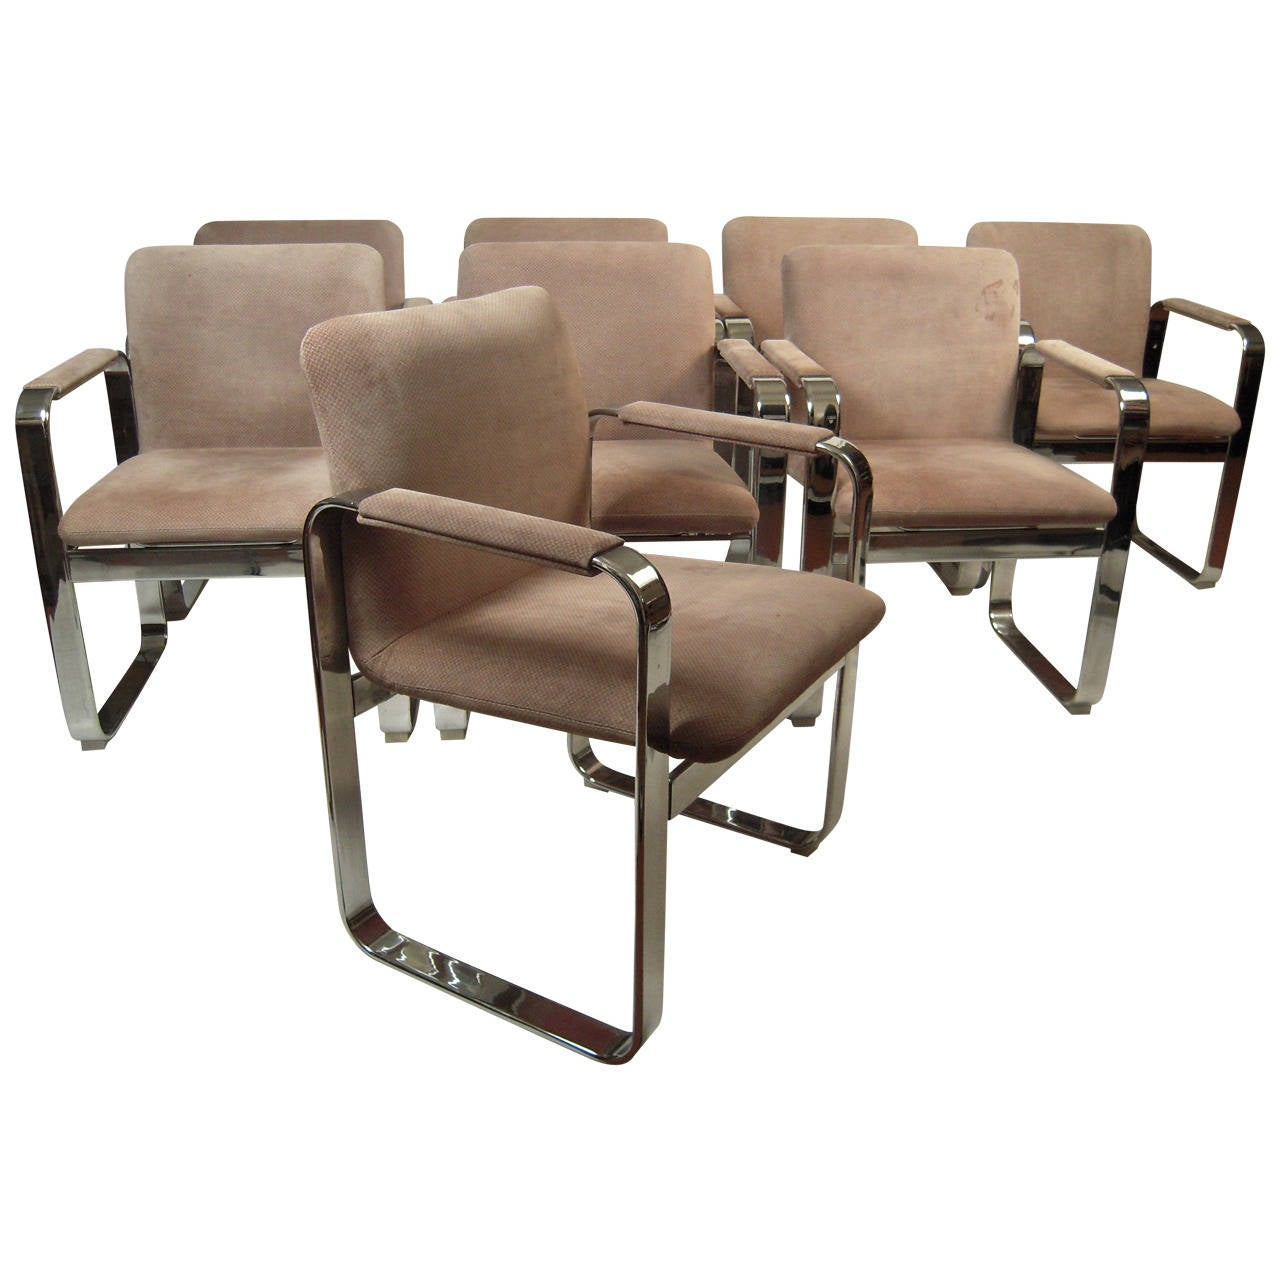 suede dining table chairs bed pillow chair set of eight 1970s italian chrome and